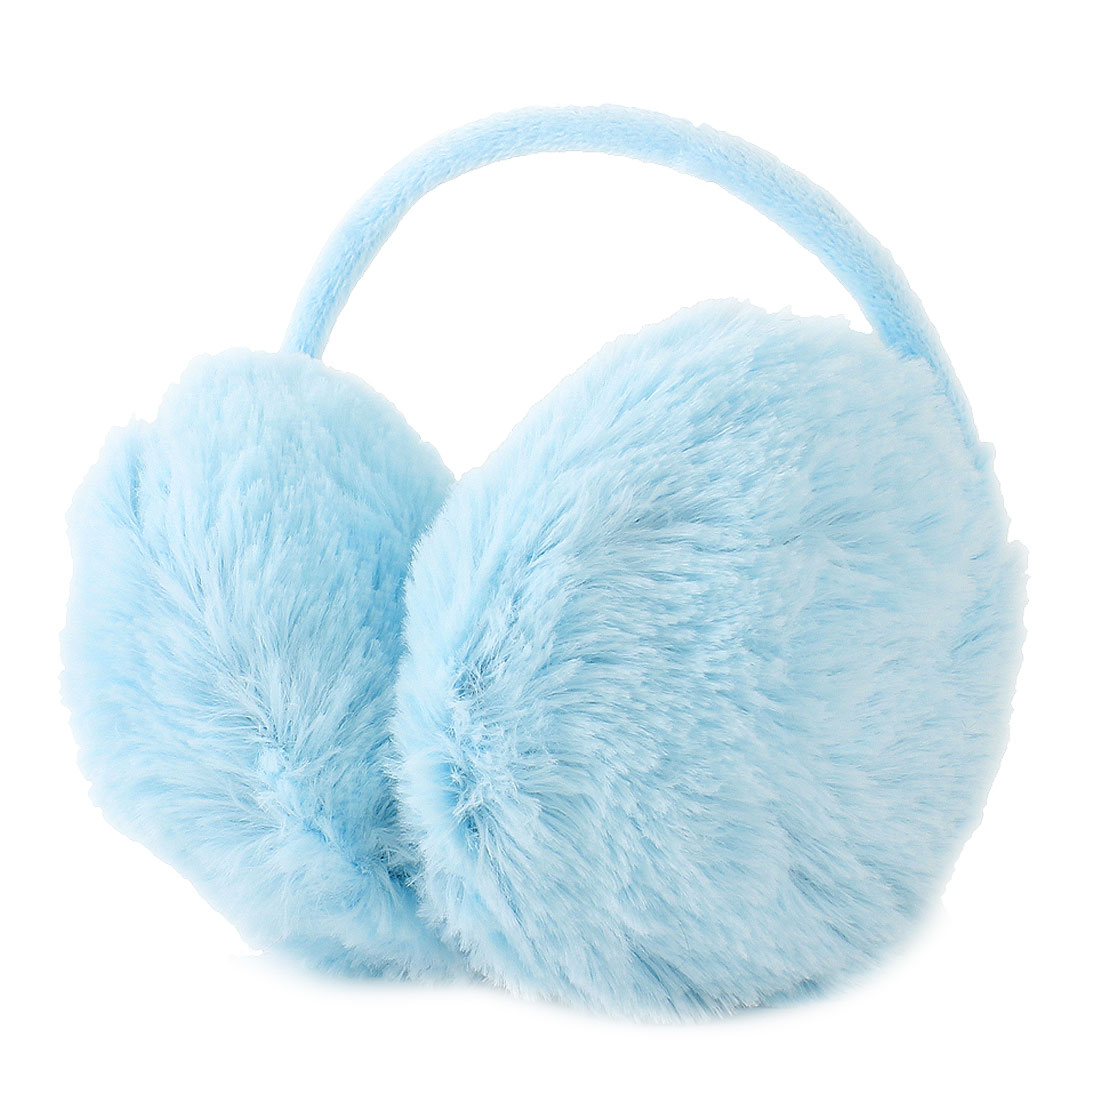 Women Girls Outdoor Winter Ear Warmers Earlap Plush Earmuffs Pale Blue